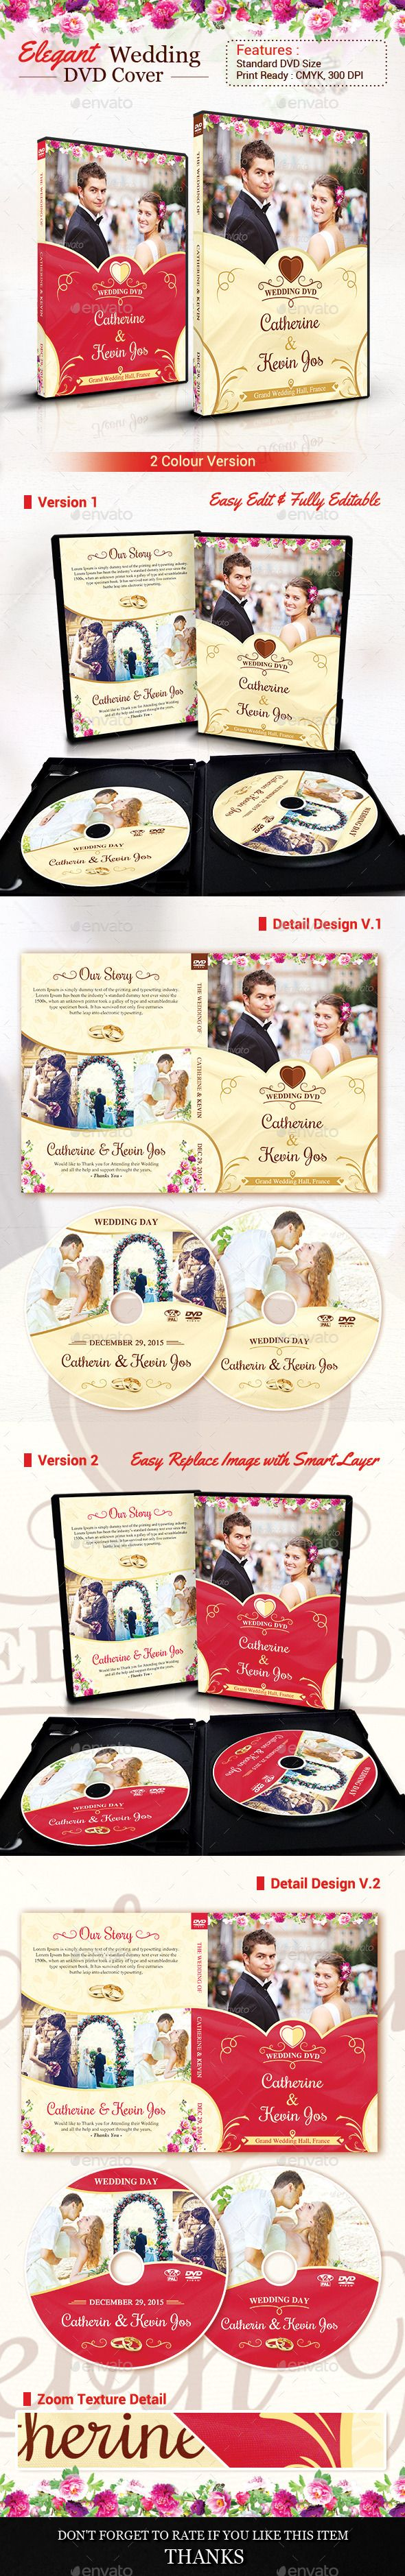 Elegant Wedding DVD Covers and Disc Label — Photoshop PSD #cd case #modern dvd • Available here → https://graphicriver.net/item/elegant-wedding-dvd-covers-and-disc-label/12514535?ref=pxcr